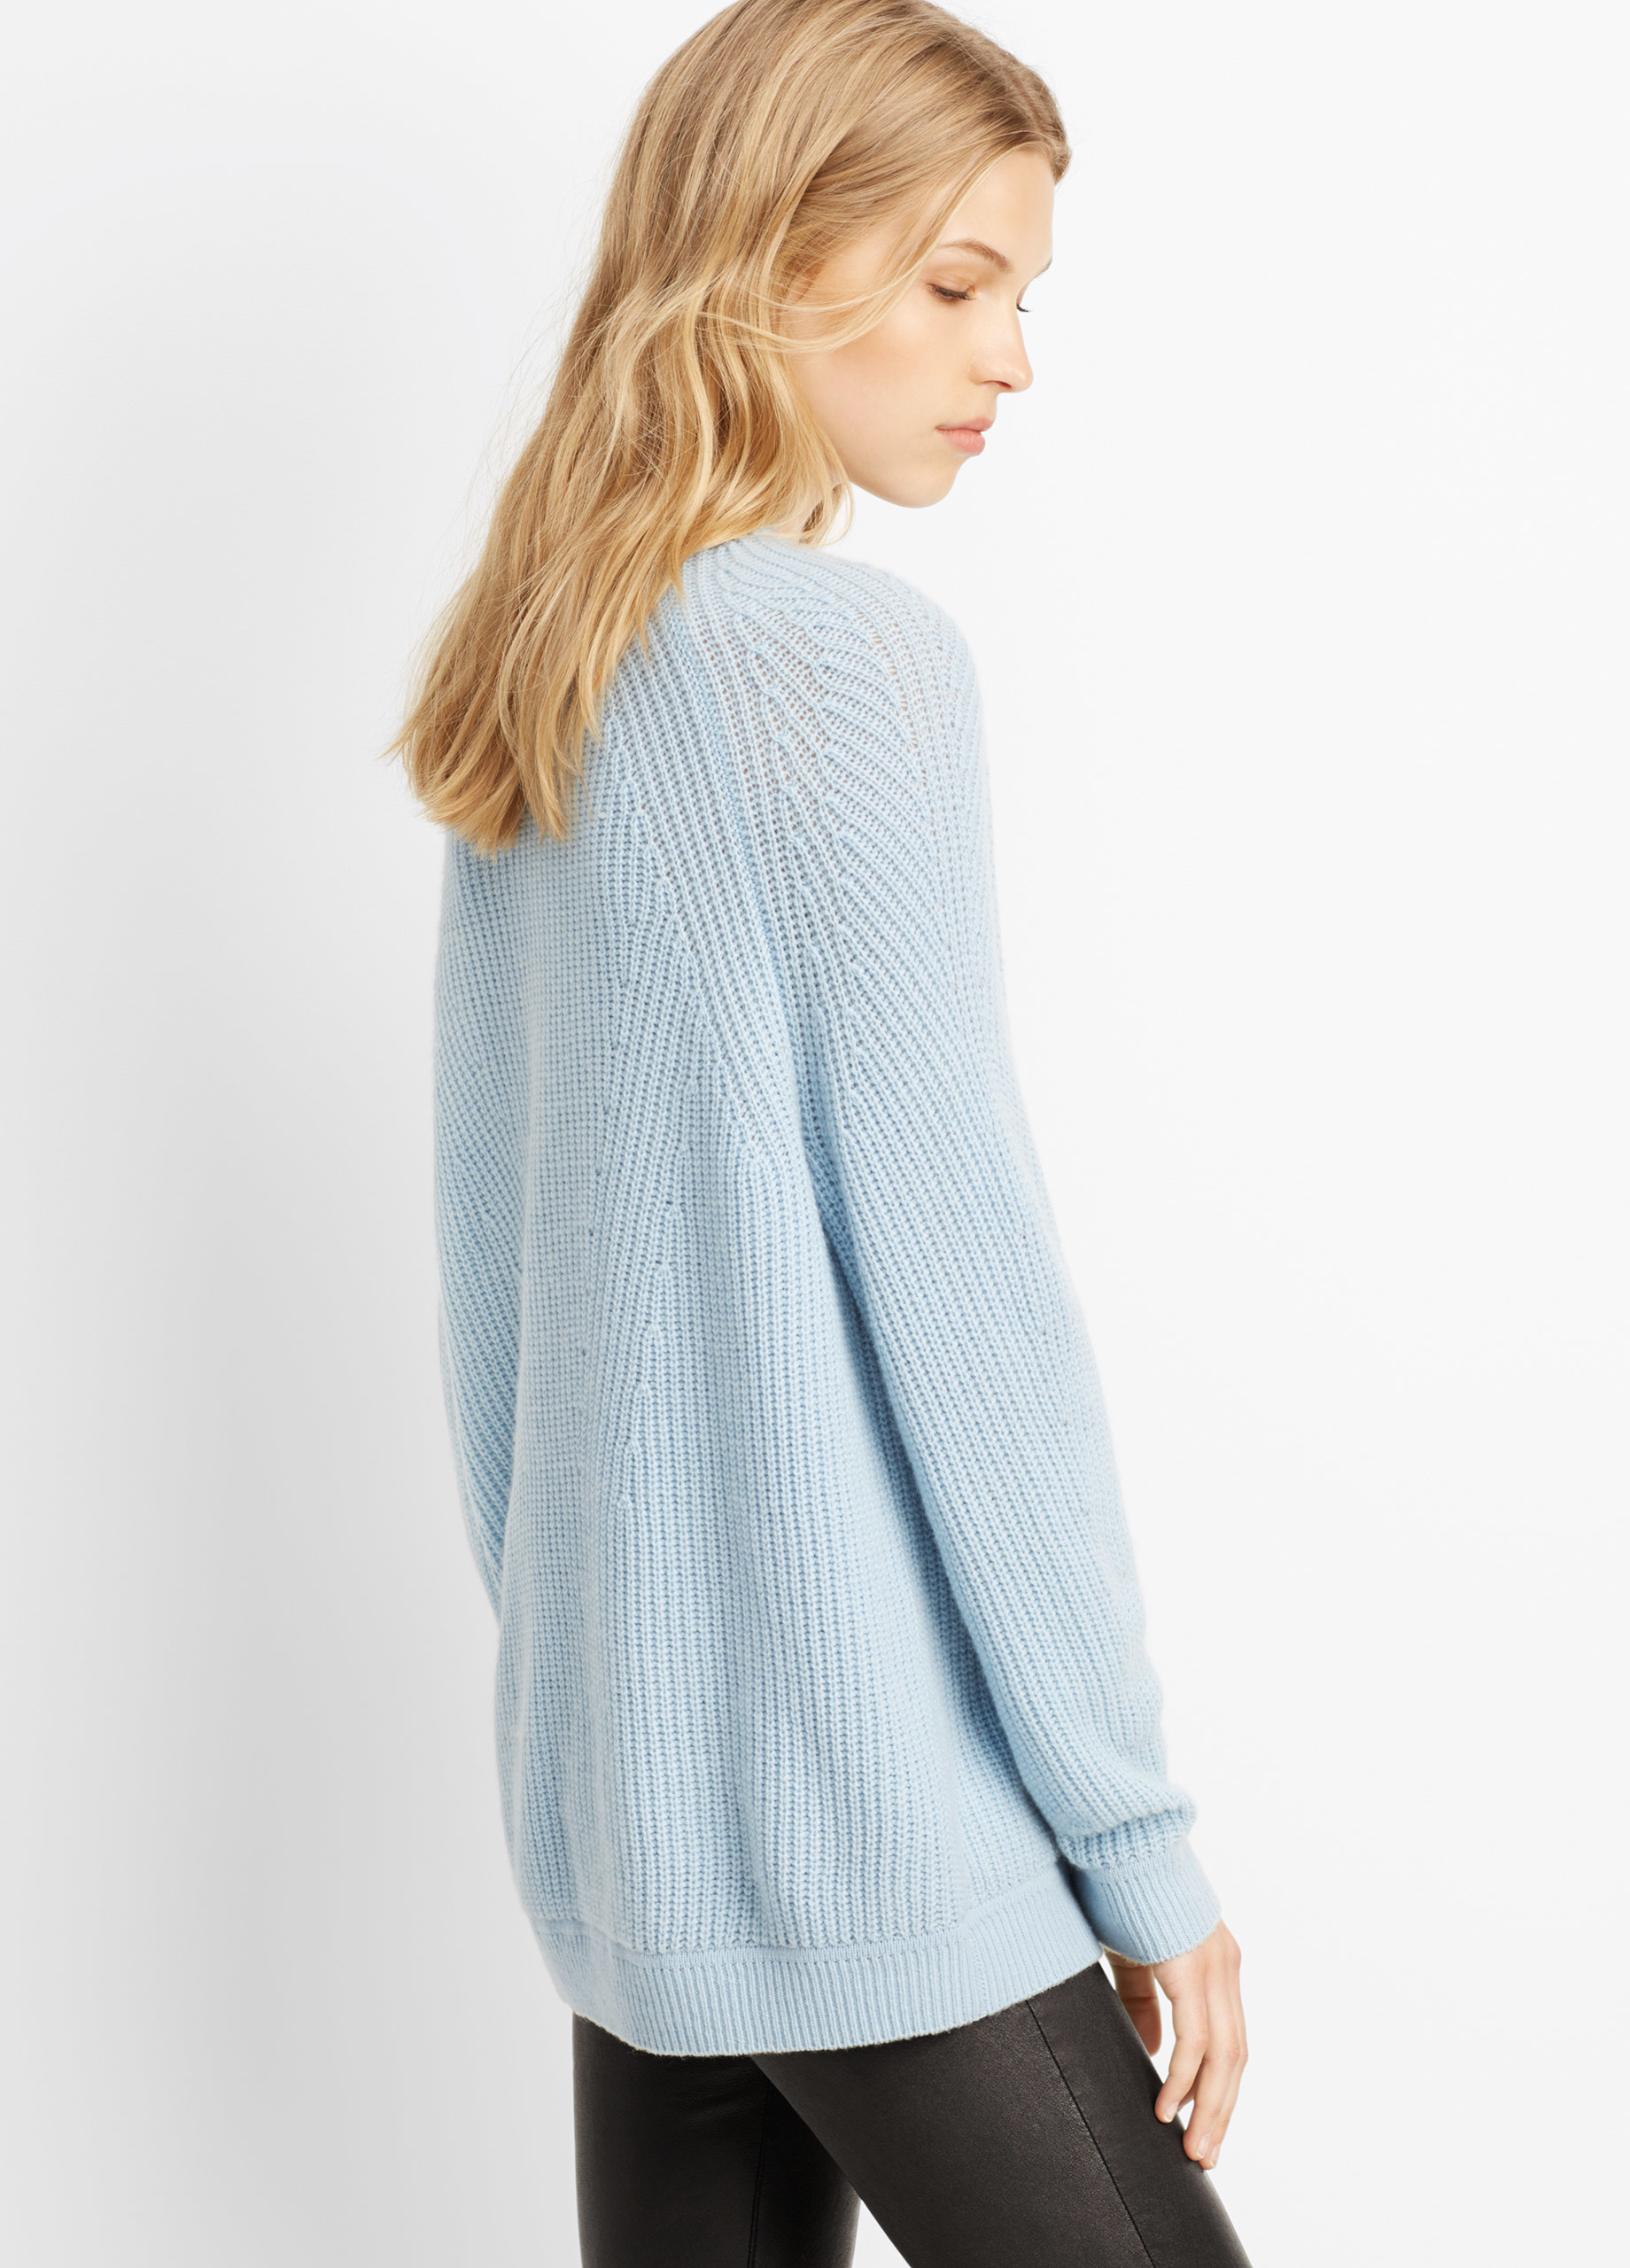 Vince Wool Cashmere Directional Rib Crew Neck Sweater in Blue | Lyst